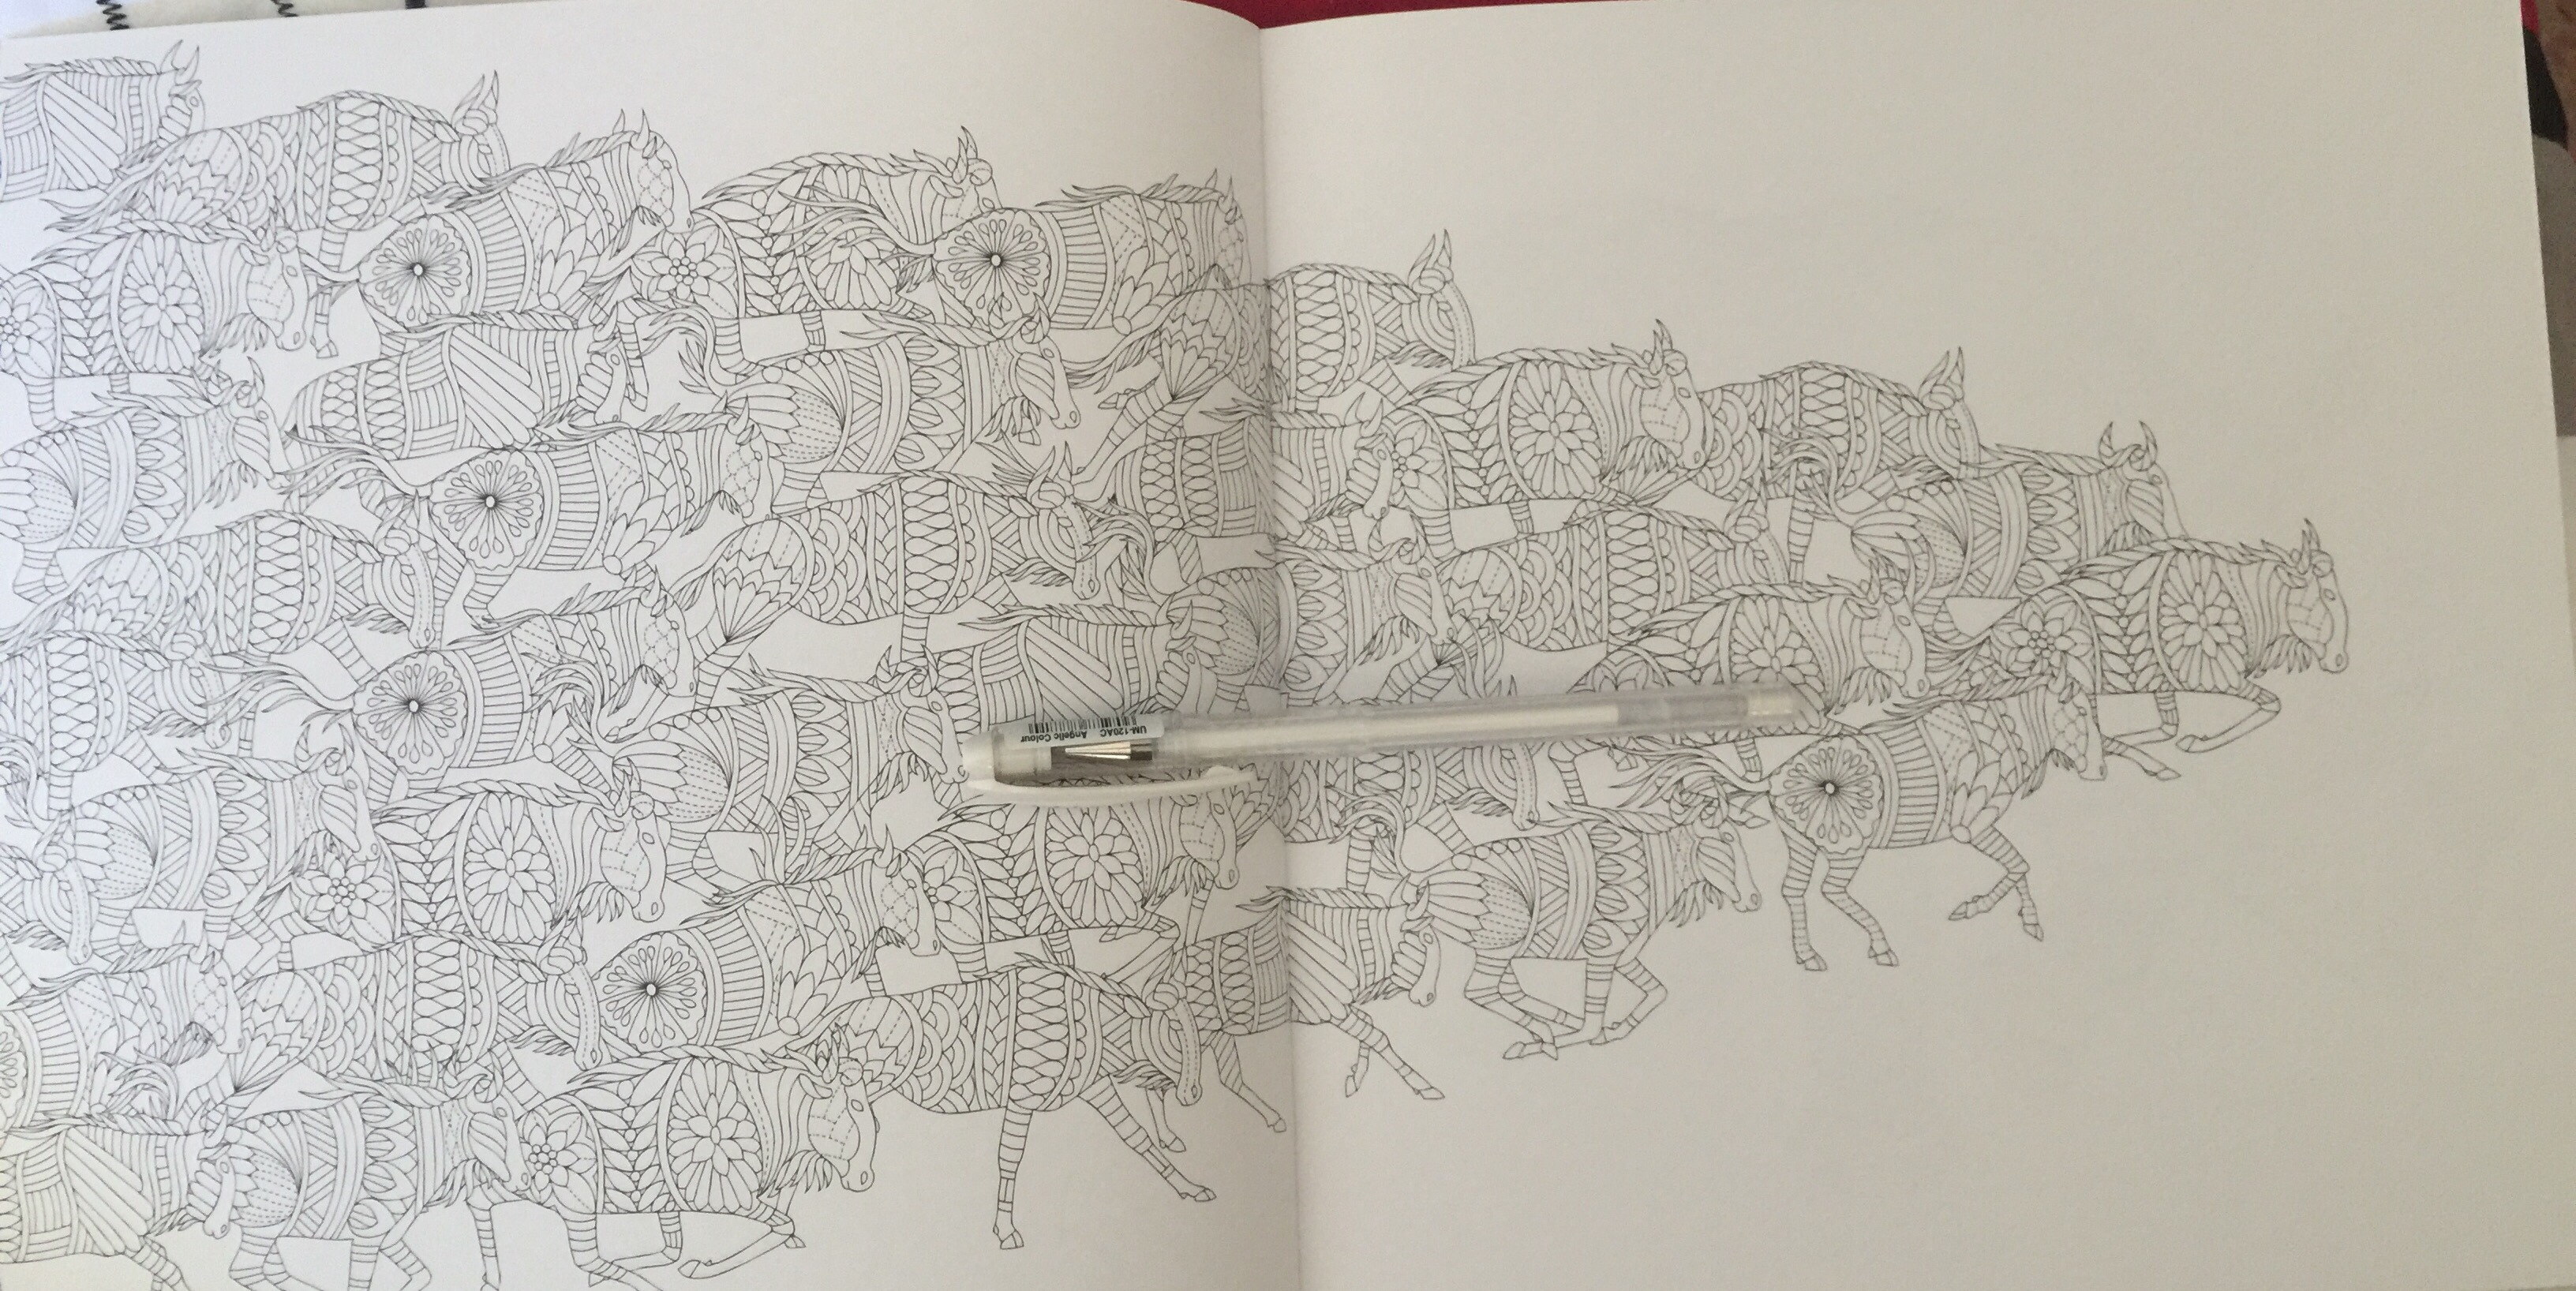 adult colouring book reviews coloring millie marotta wild savannah stress relief art therapy pencils markers